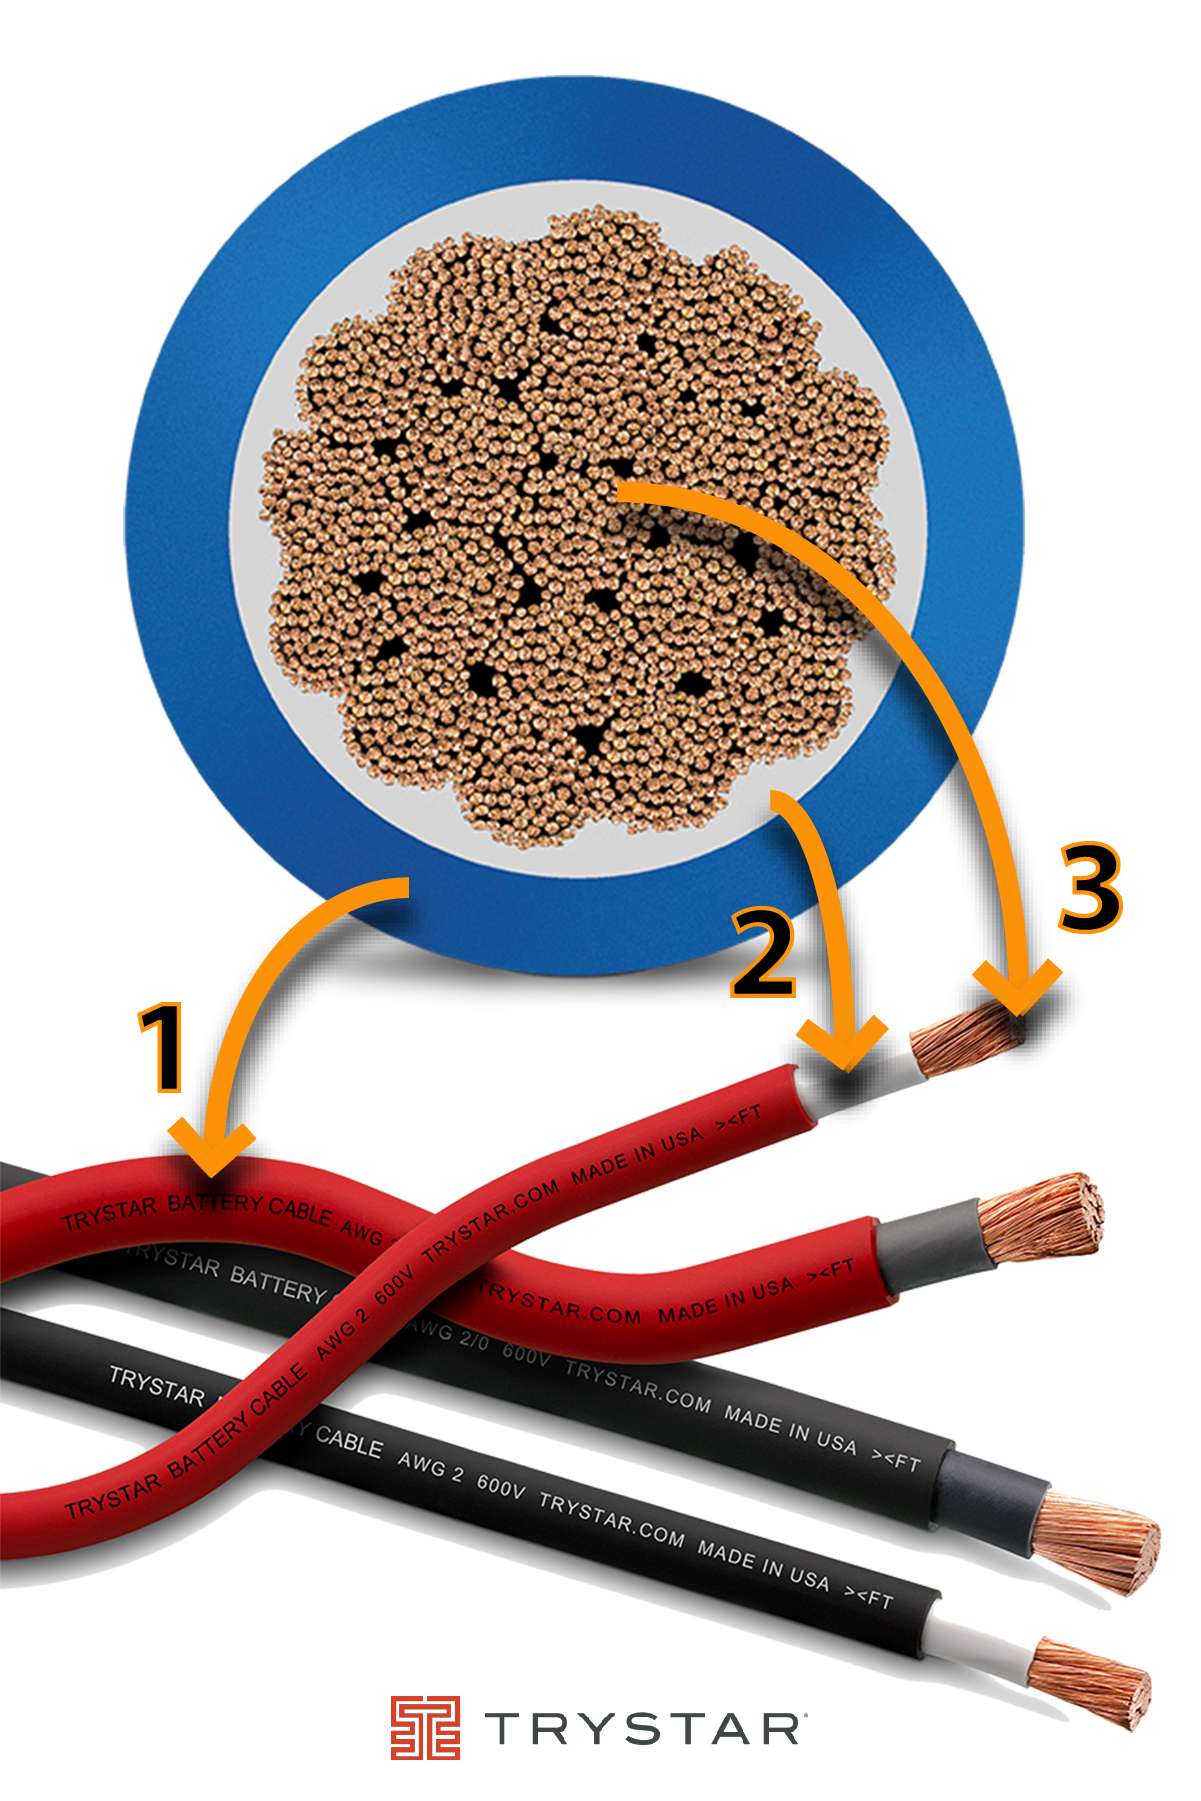 Power Pool Plus - Trystar Cable Diagram